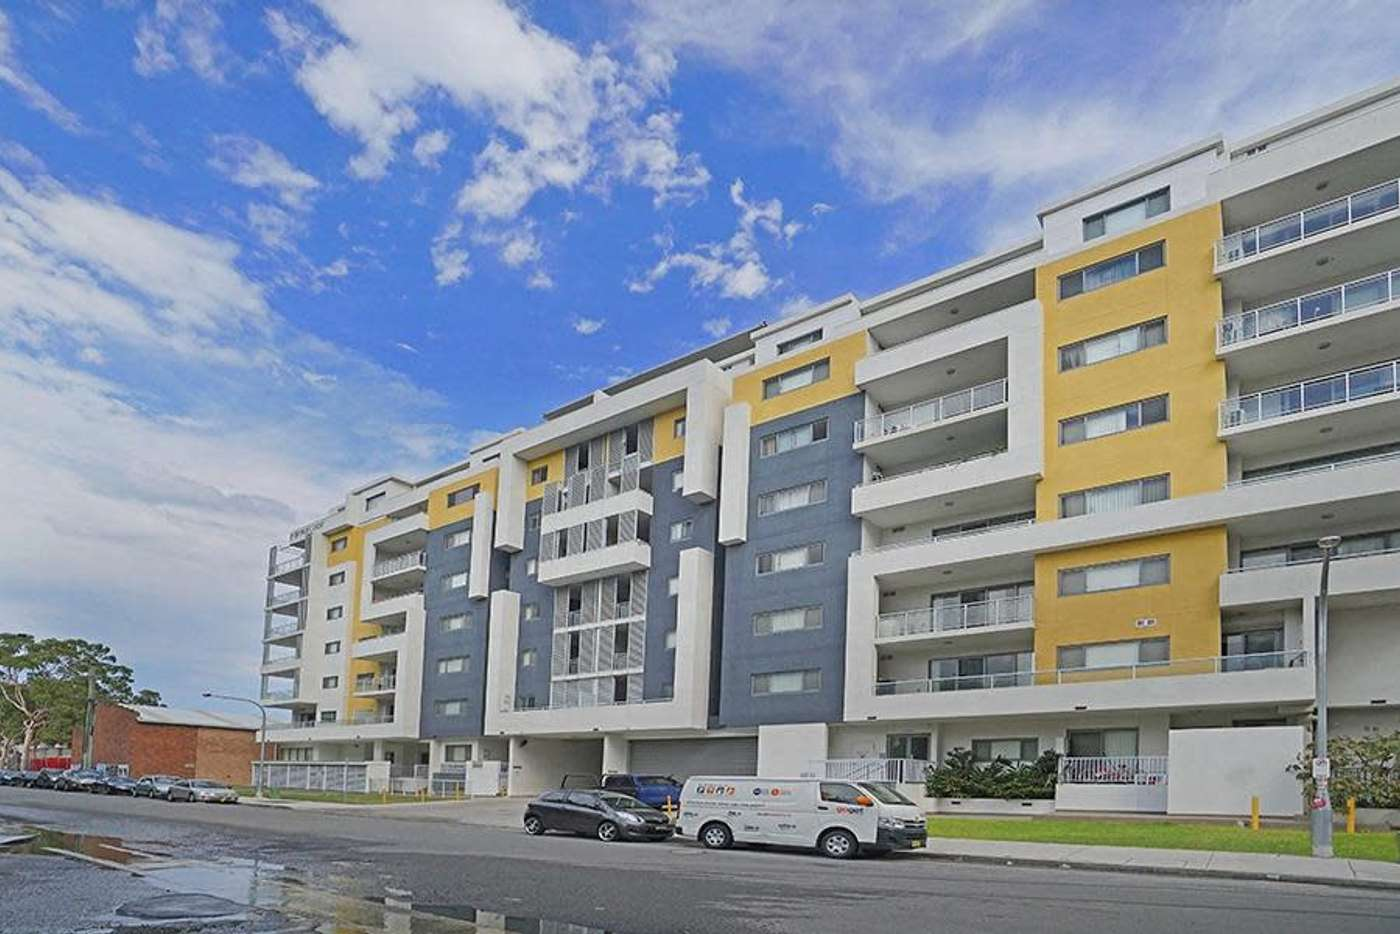 Main view of Homely apartment listing, 105/52-62 Arncliffe St, Wolli Creek NSW 2205